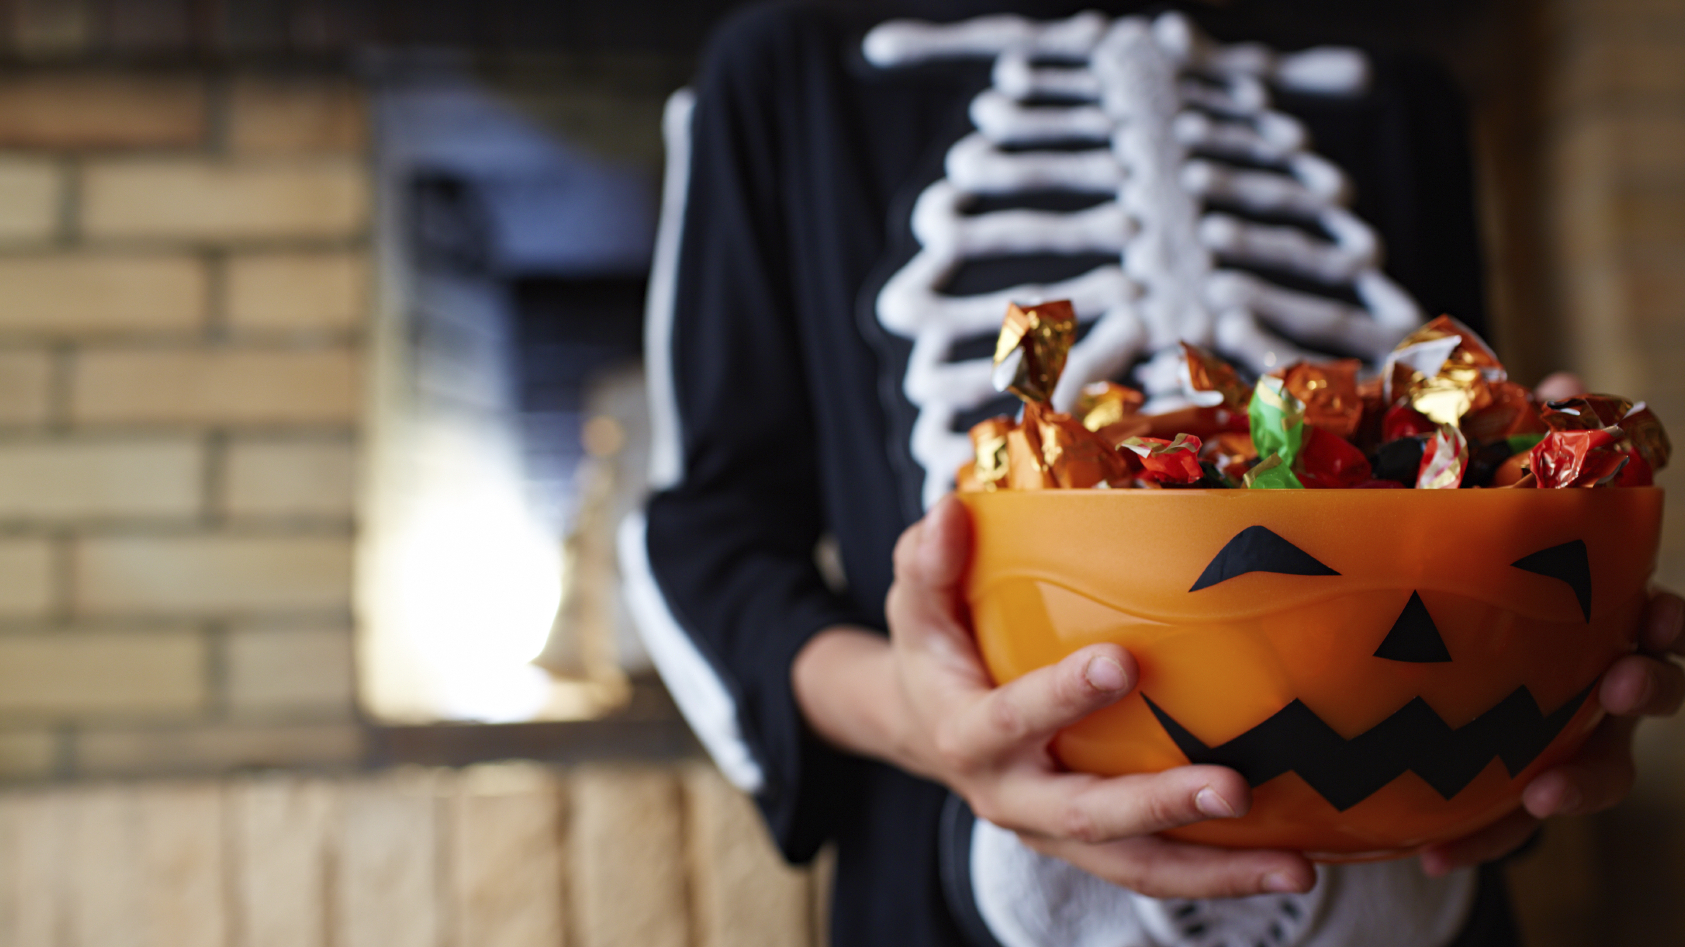 Why Are Kids Who Get Less Candy Happier On Halloween?